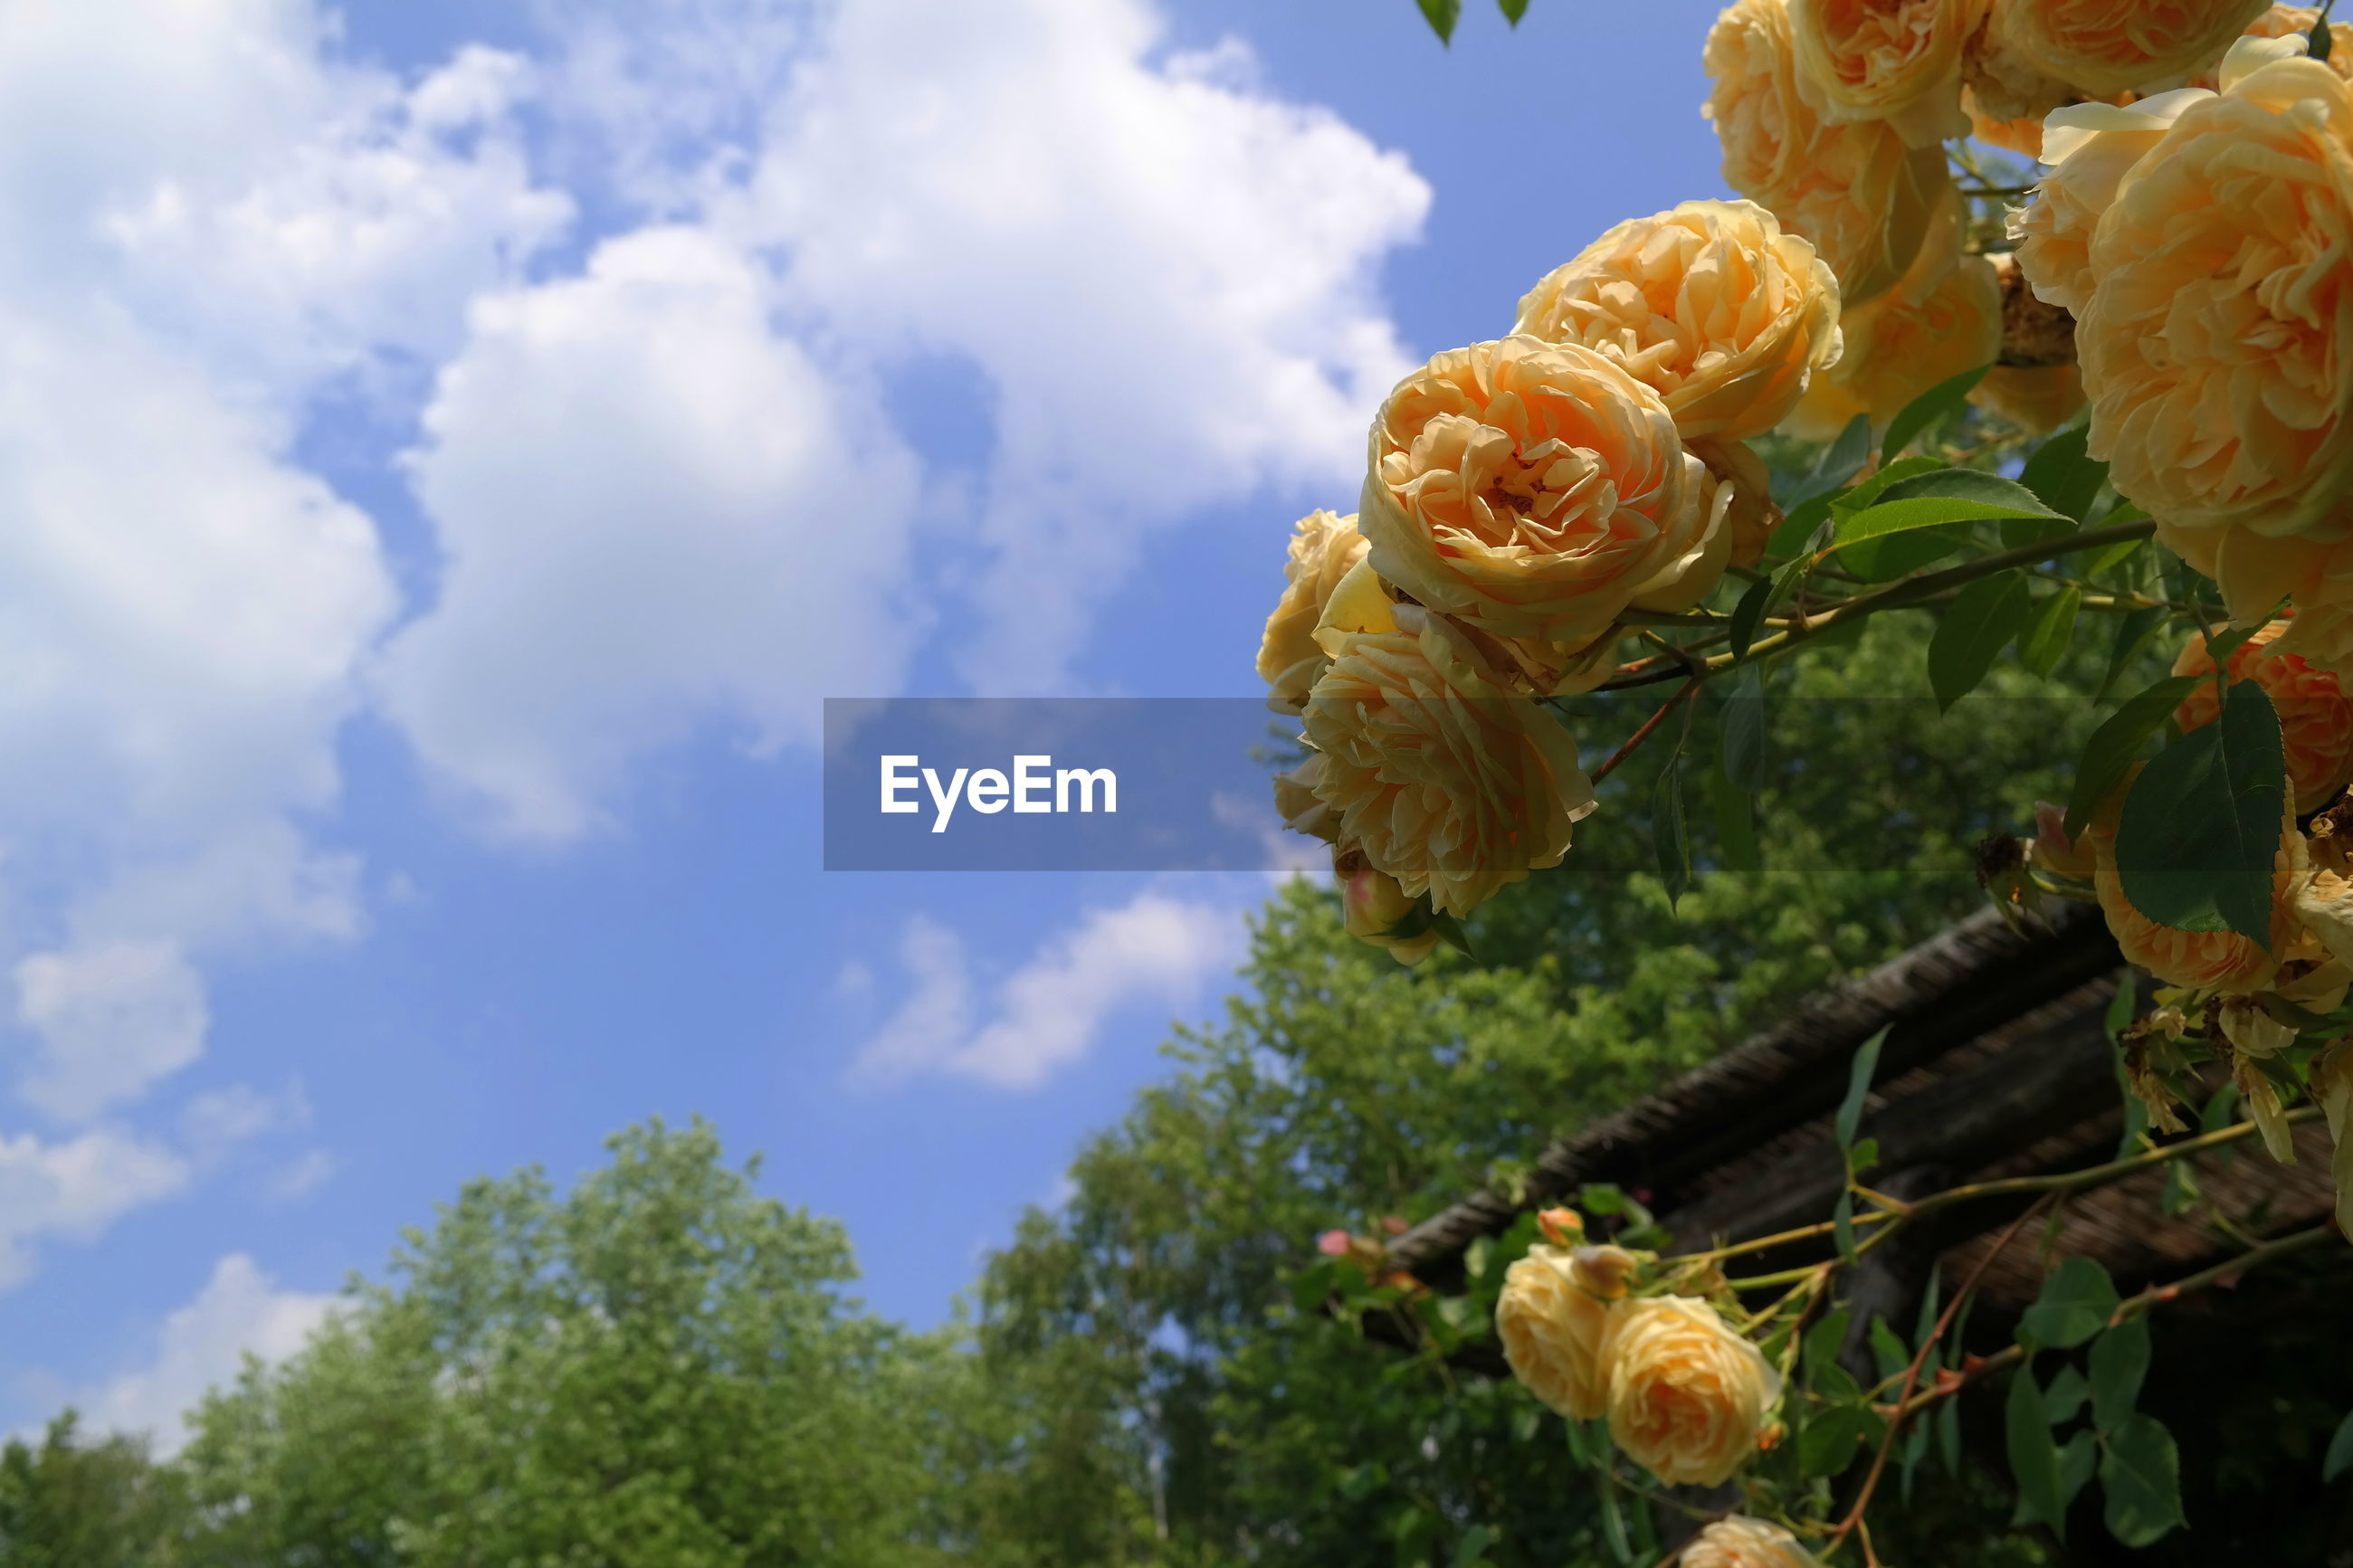 LOW ANGLE VIEW OF ROSE BLOOMING AGAINST SKY